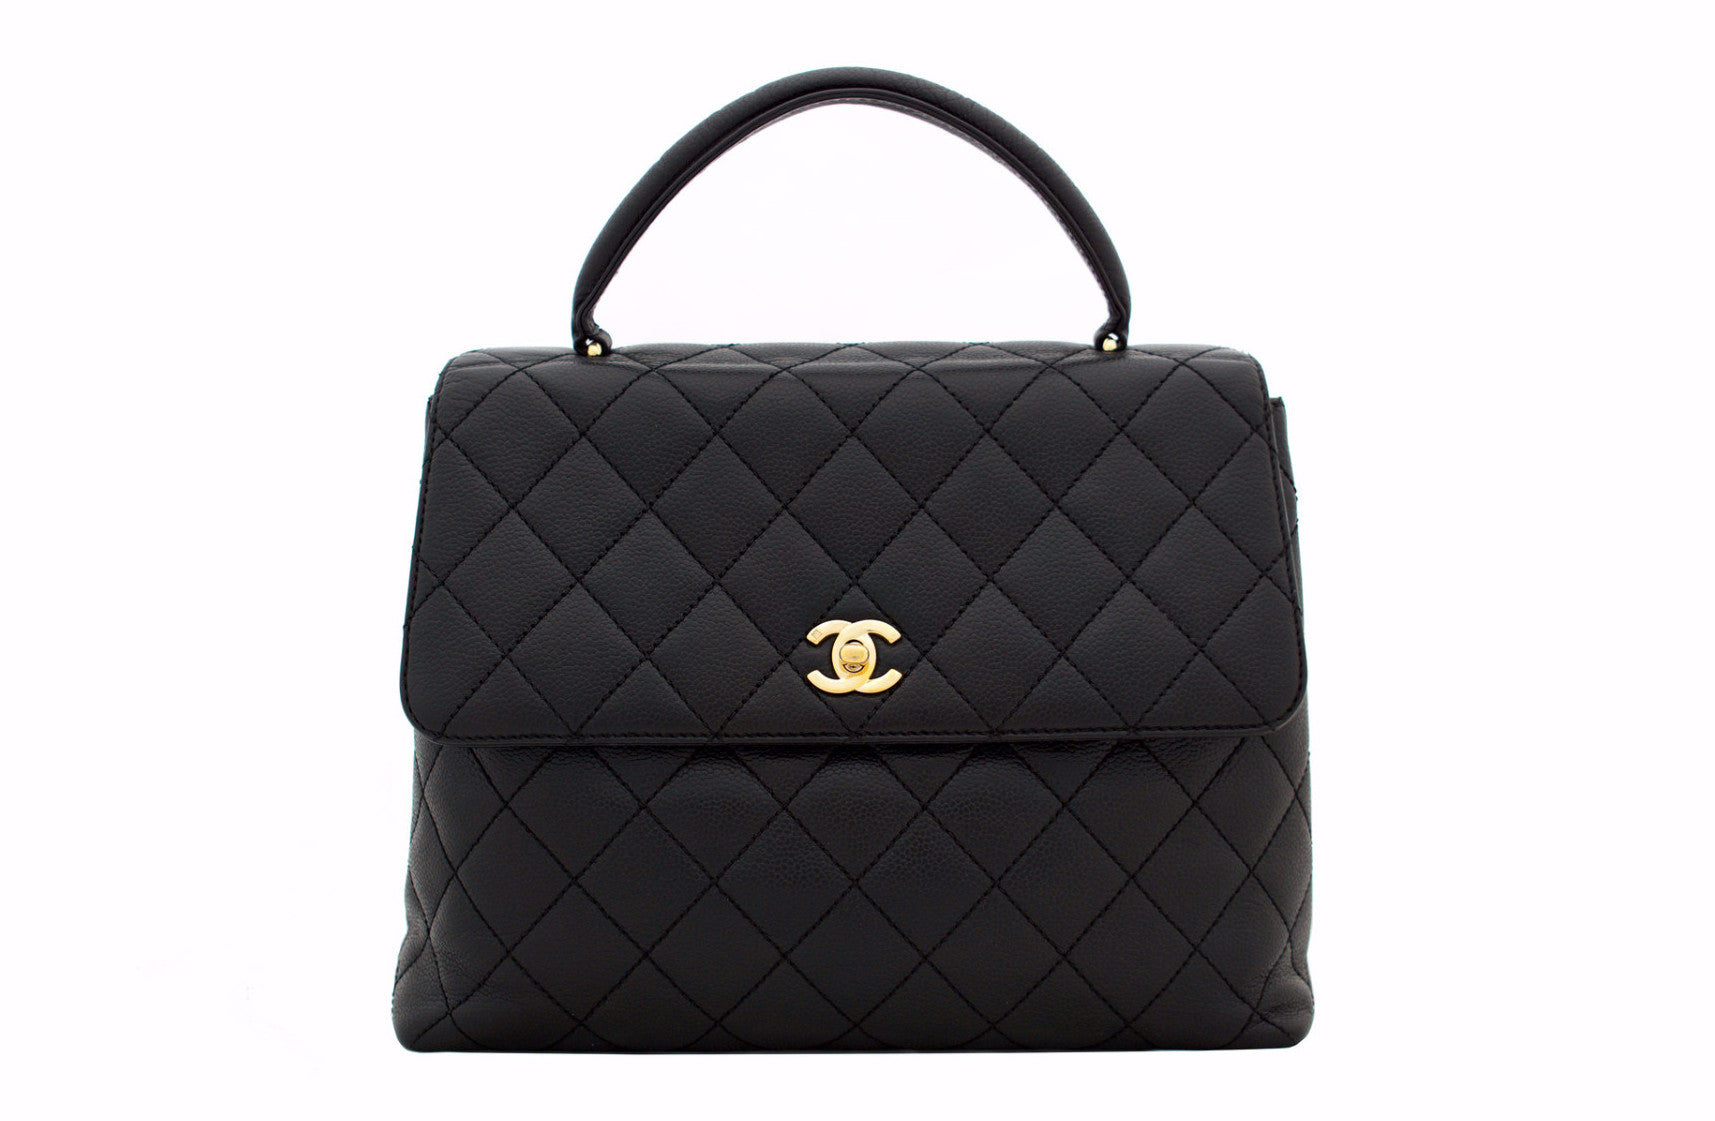 564c6e2e4c14 CHANEL VINTAGE KELLY JUMBO BAG - Quilted Caviar Leather in Black ...